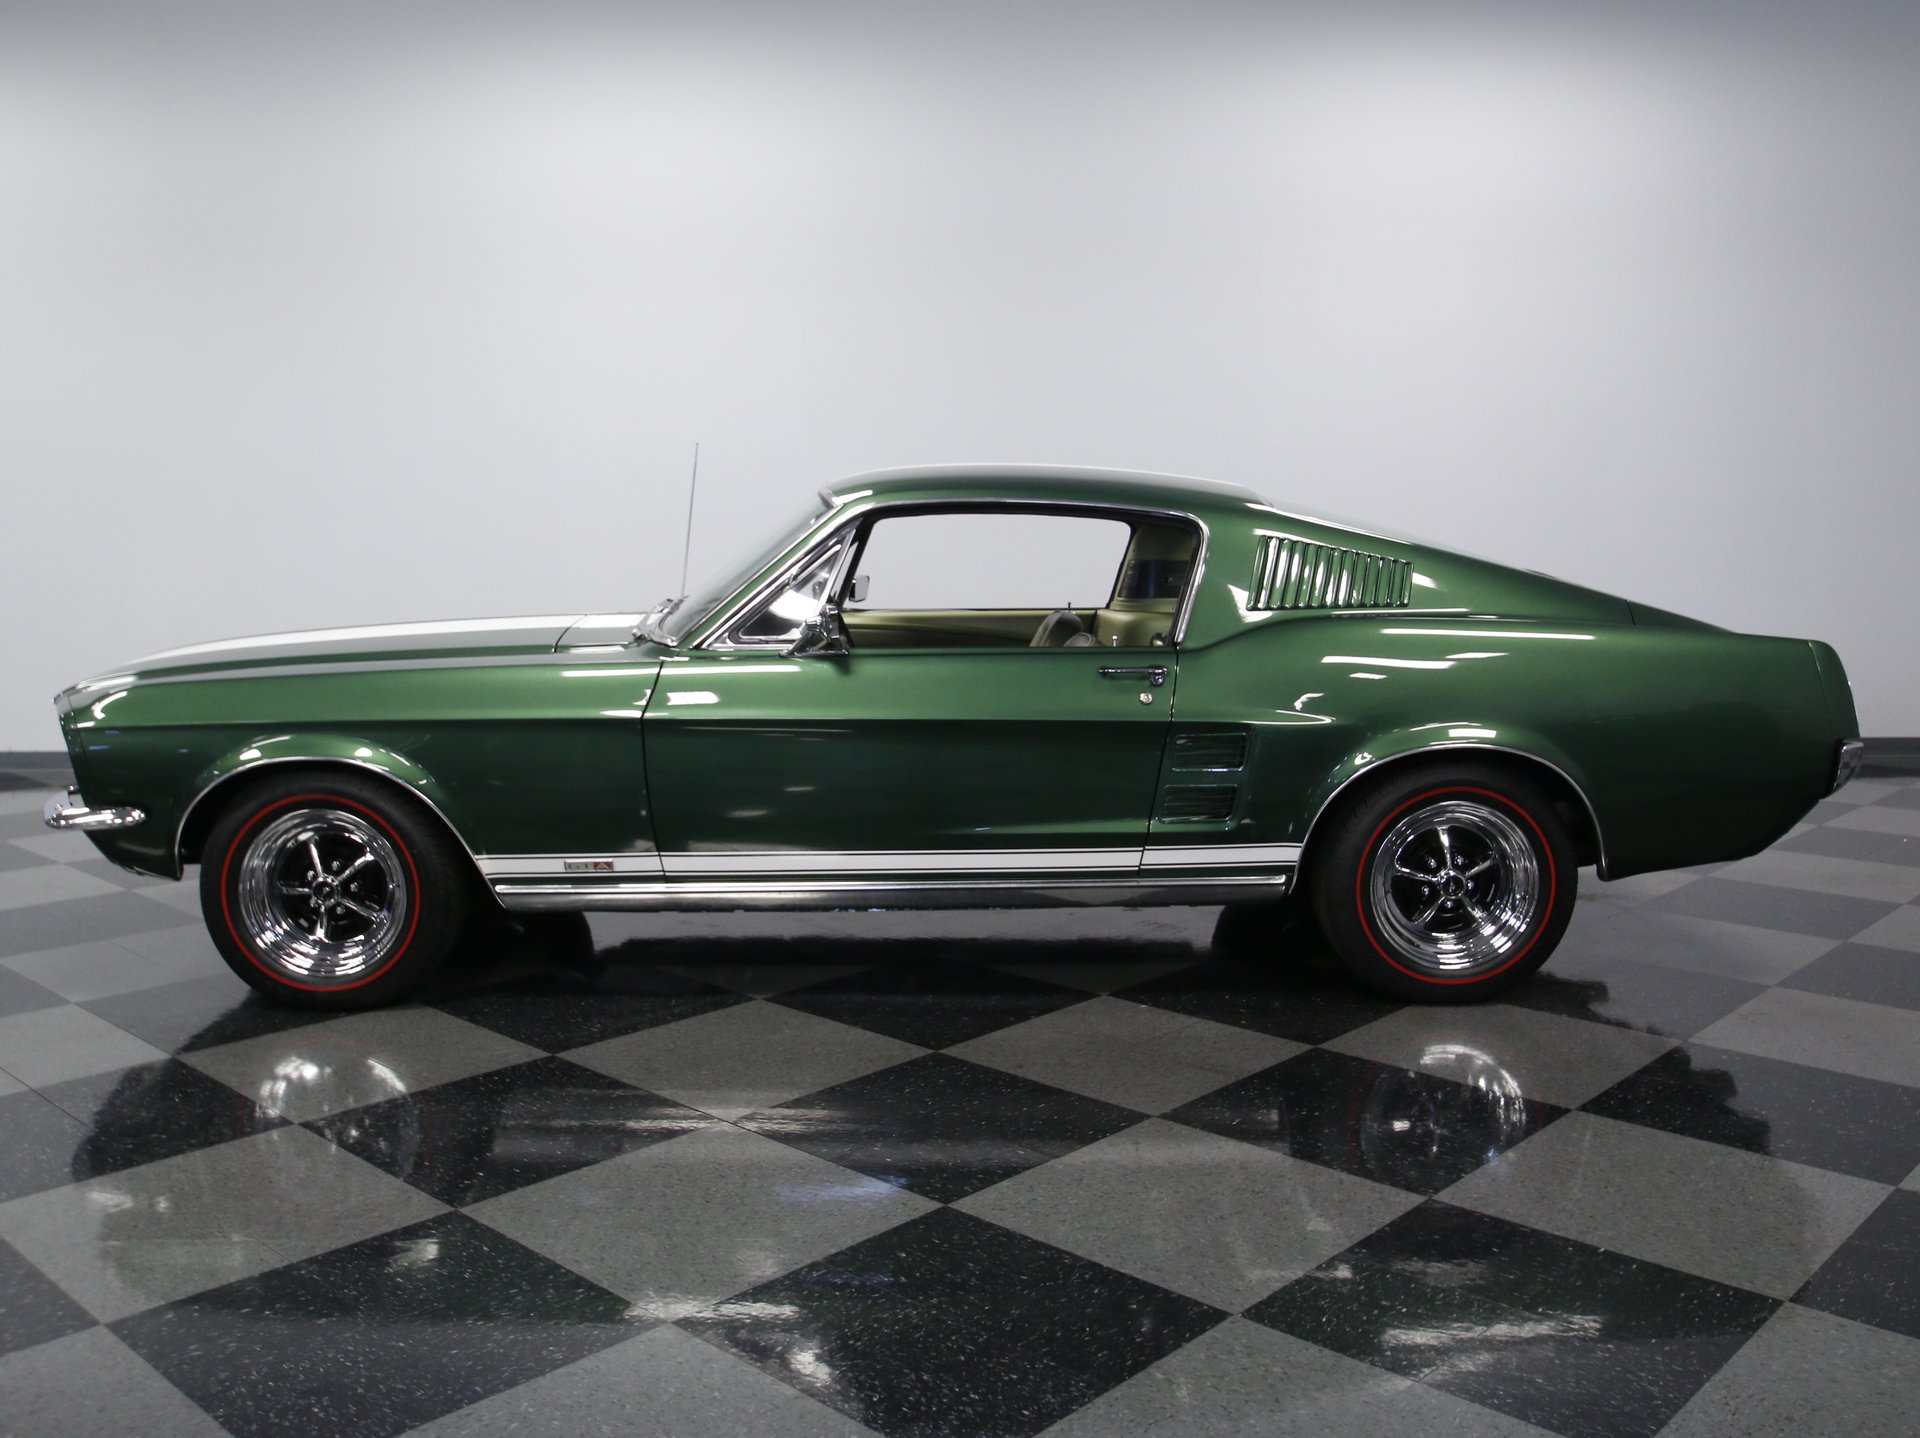 1967 ford mustang gta fastback